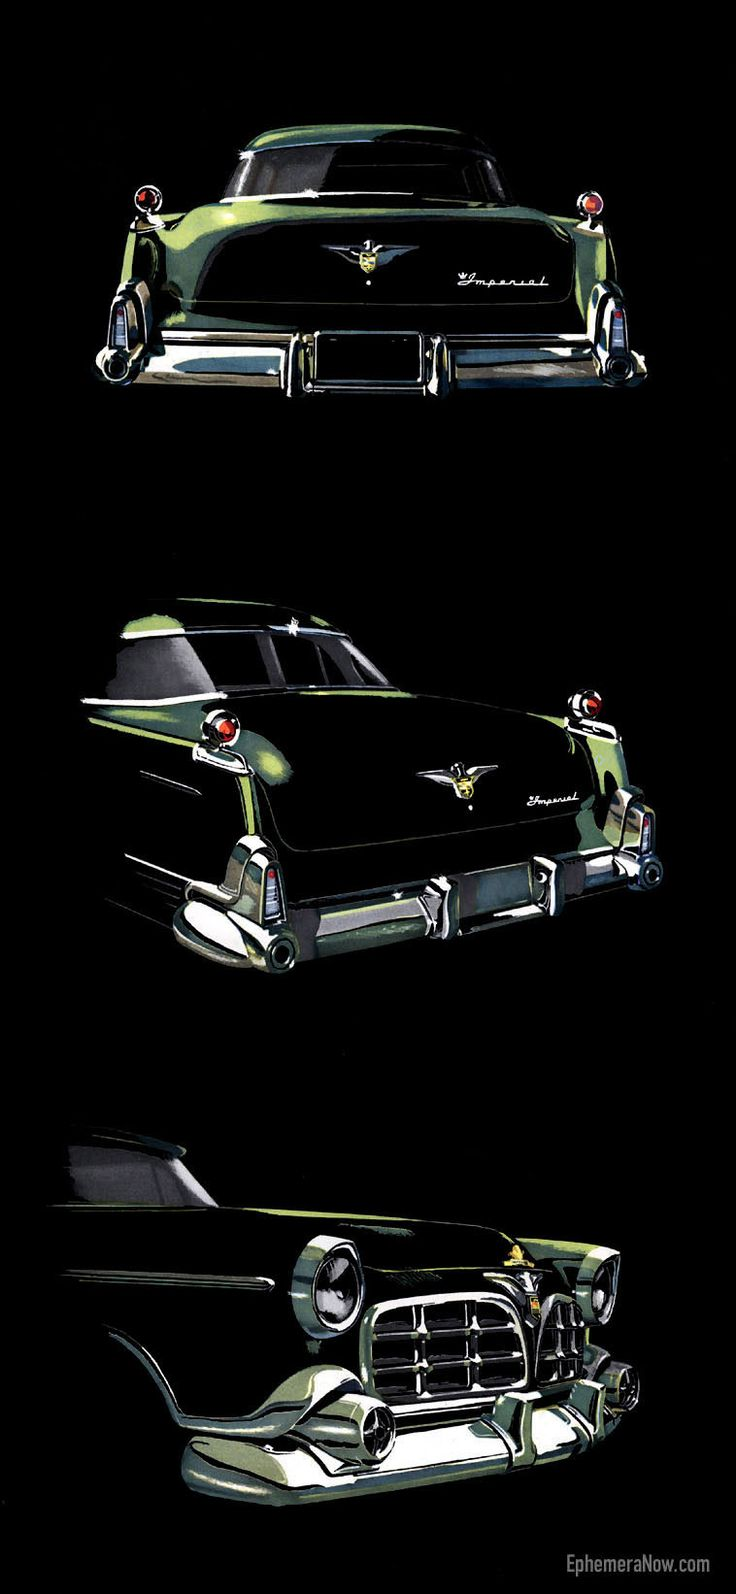 1955 Chrysler Imperial....Brought to you by House of Insurance Eugene, Oregon 97401 www.myhouseofinsurance.com